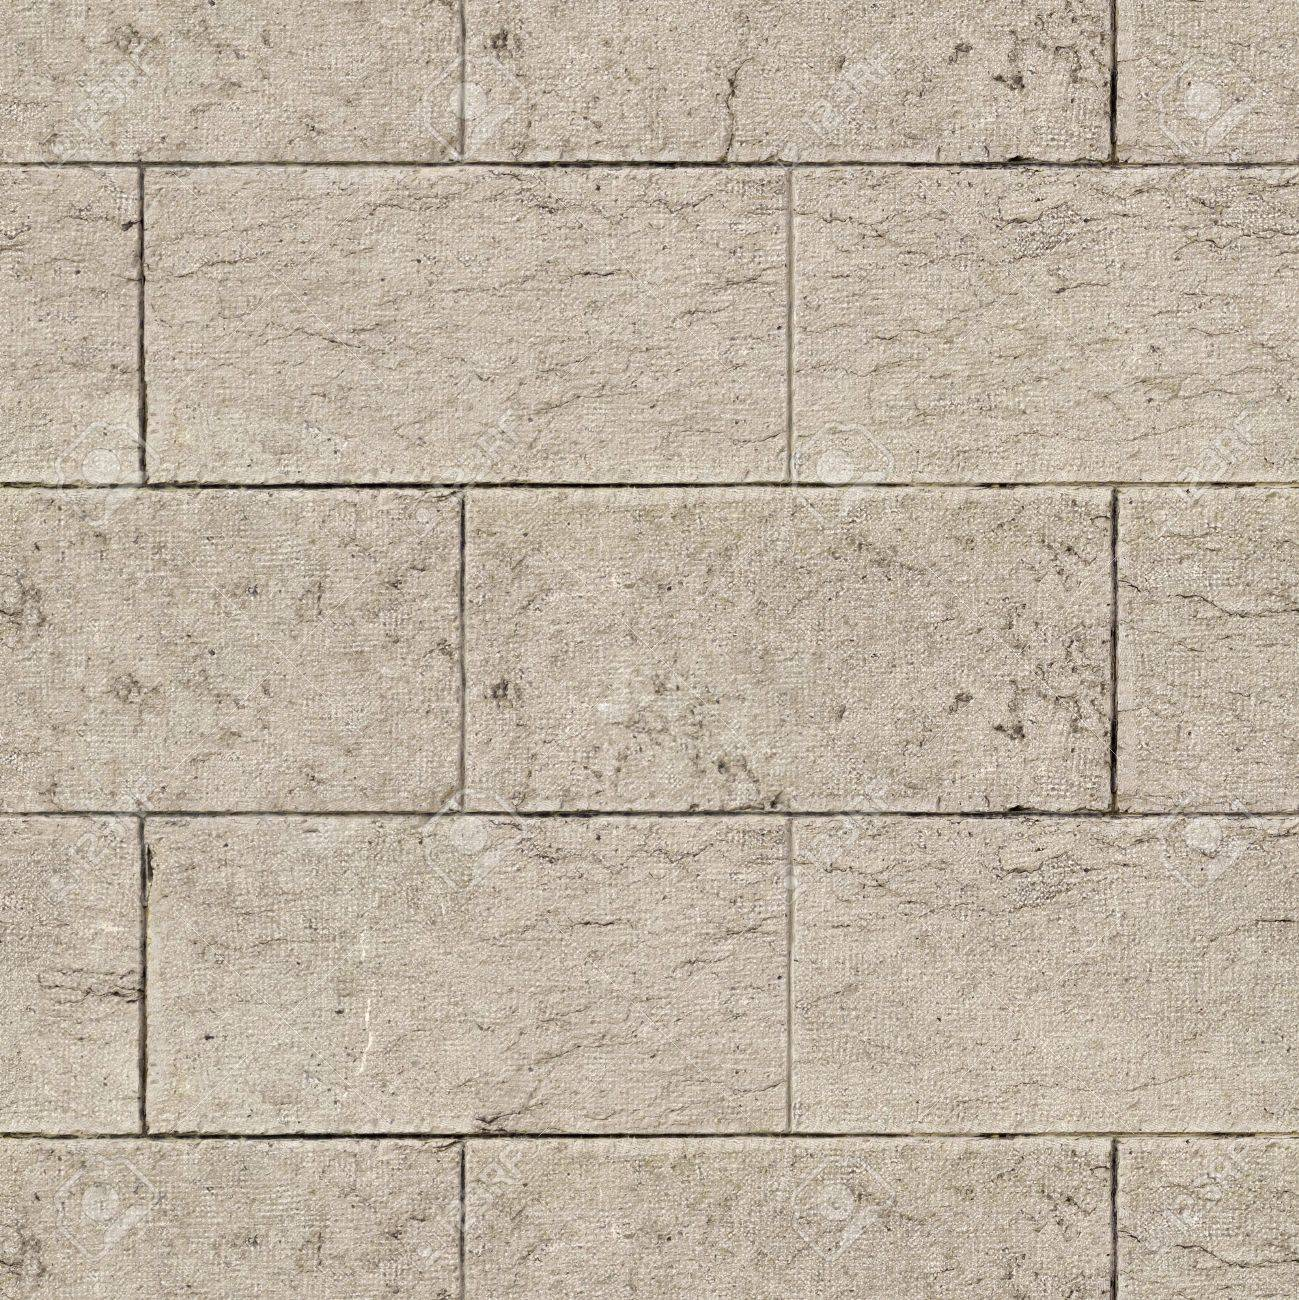 Ancient Marble Wall Seamless Tileable Texture Stock Photo - 18429829